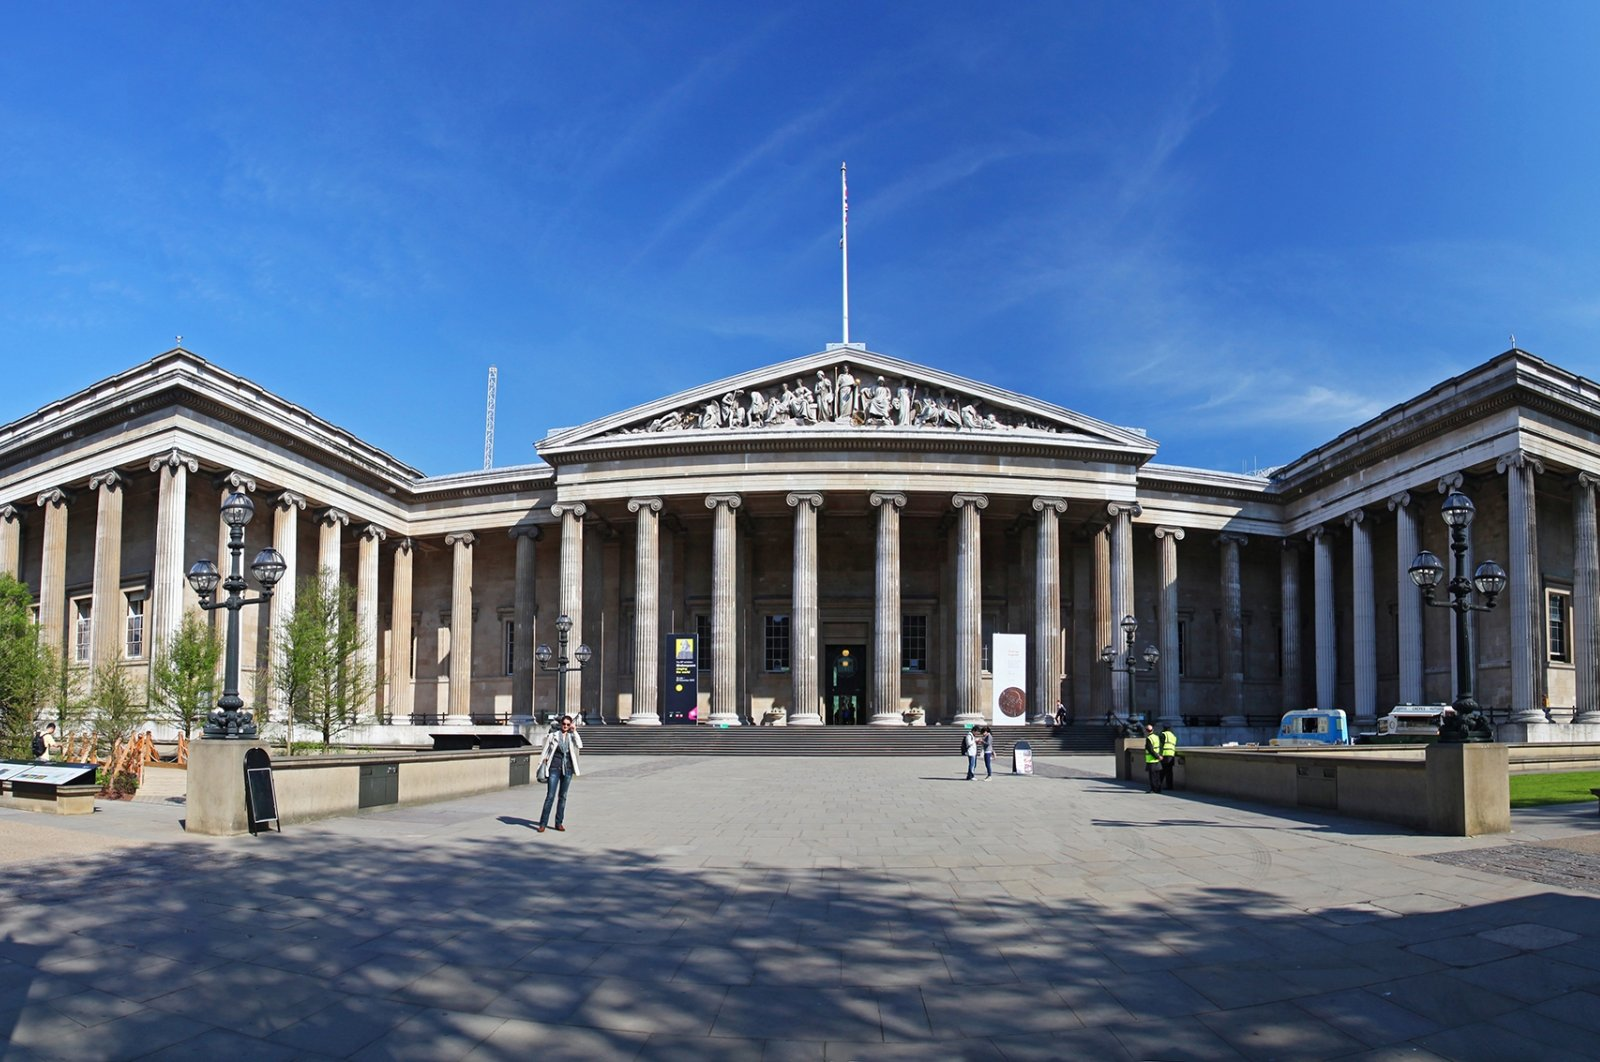 The British Museum in London, England, May 5, 2011. (Shutterstock Photo)